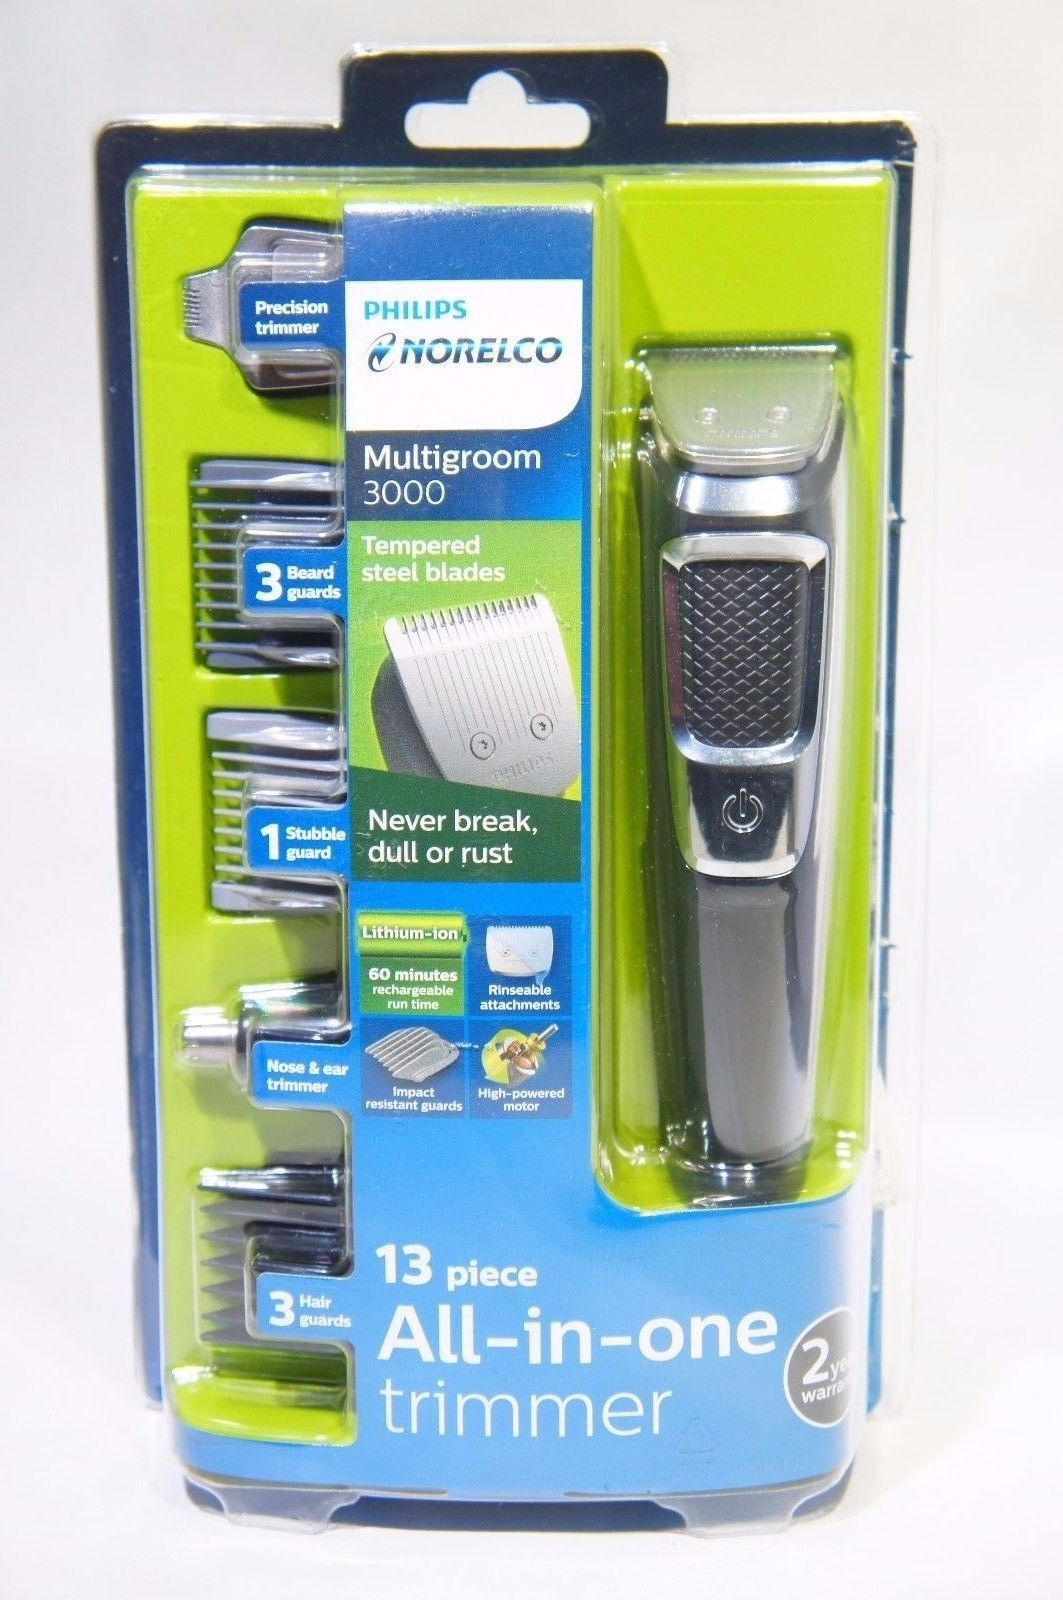 Philips Norelco Mg3750 Multigroom Series 3000 13 Attachments Lb 15 Thelowex